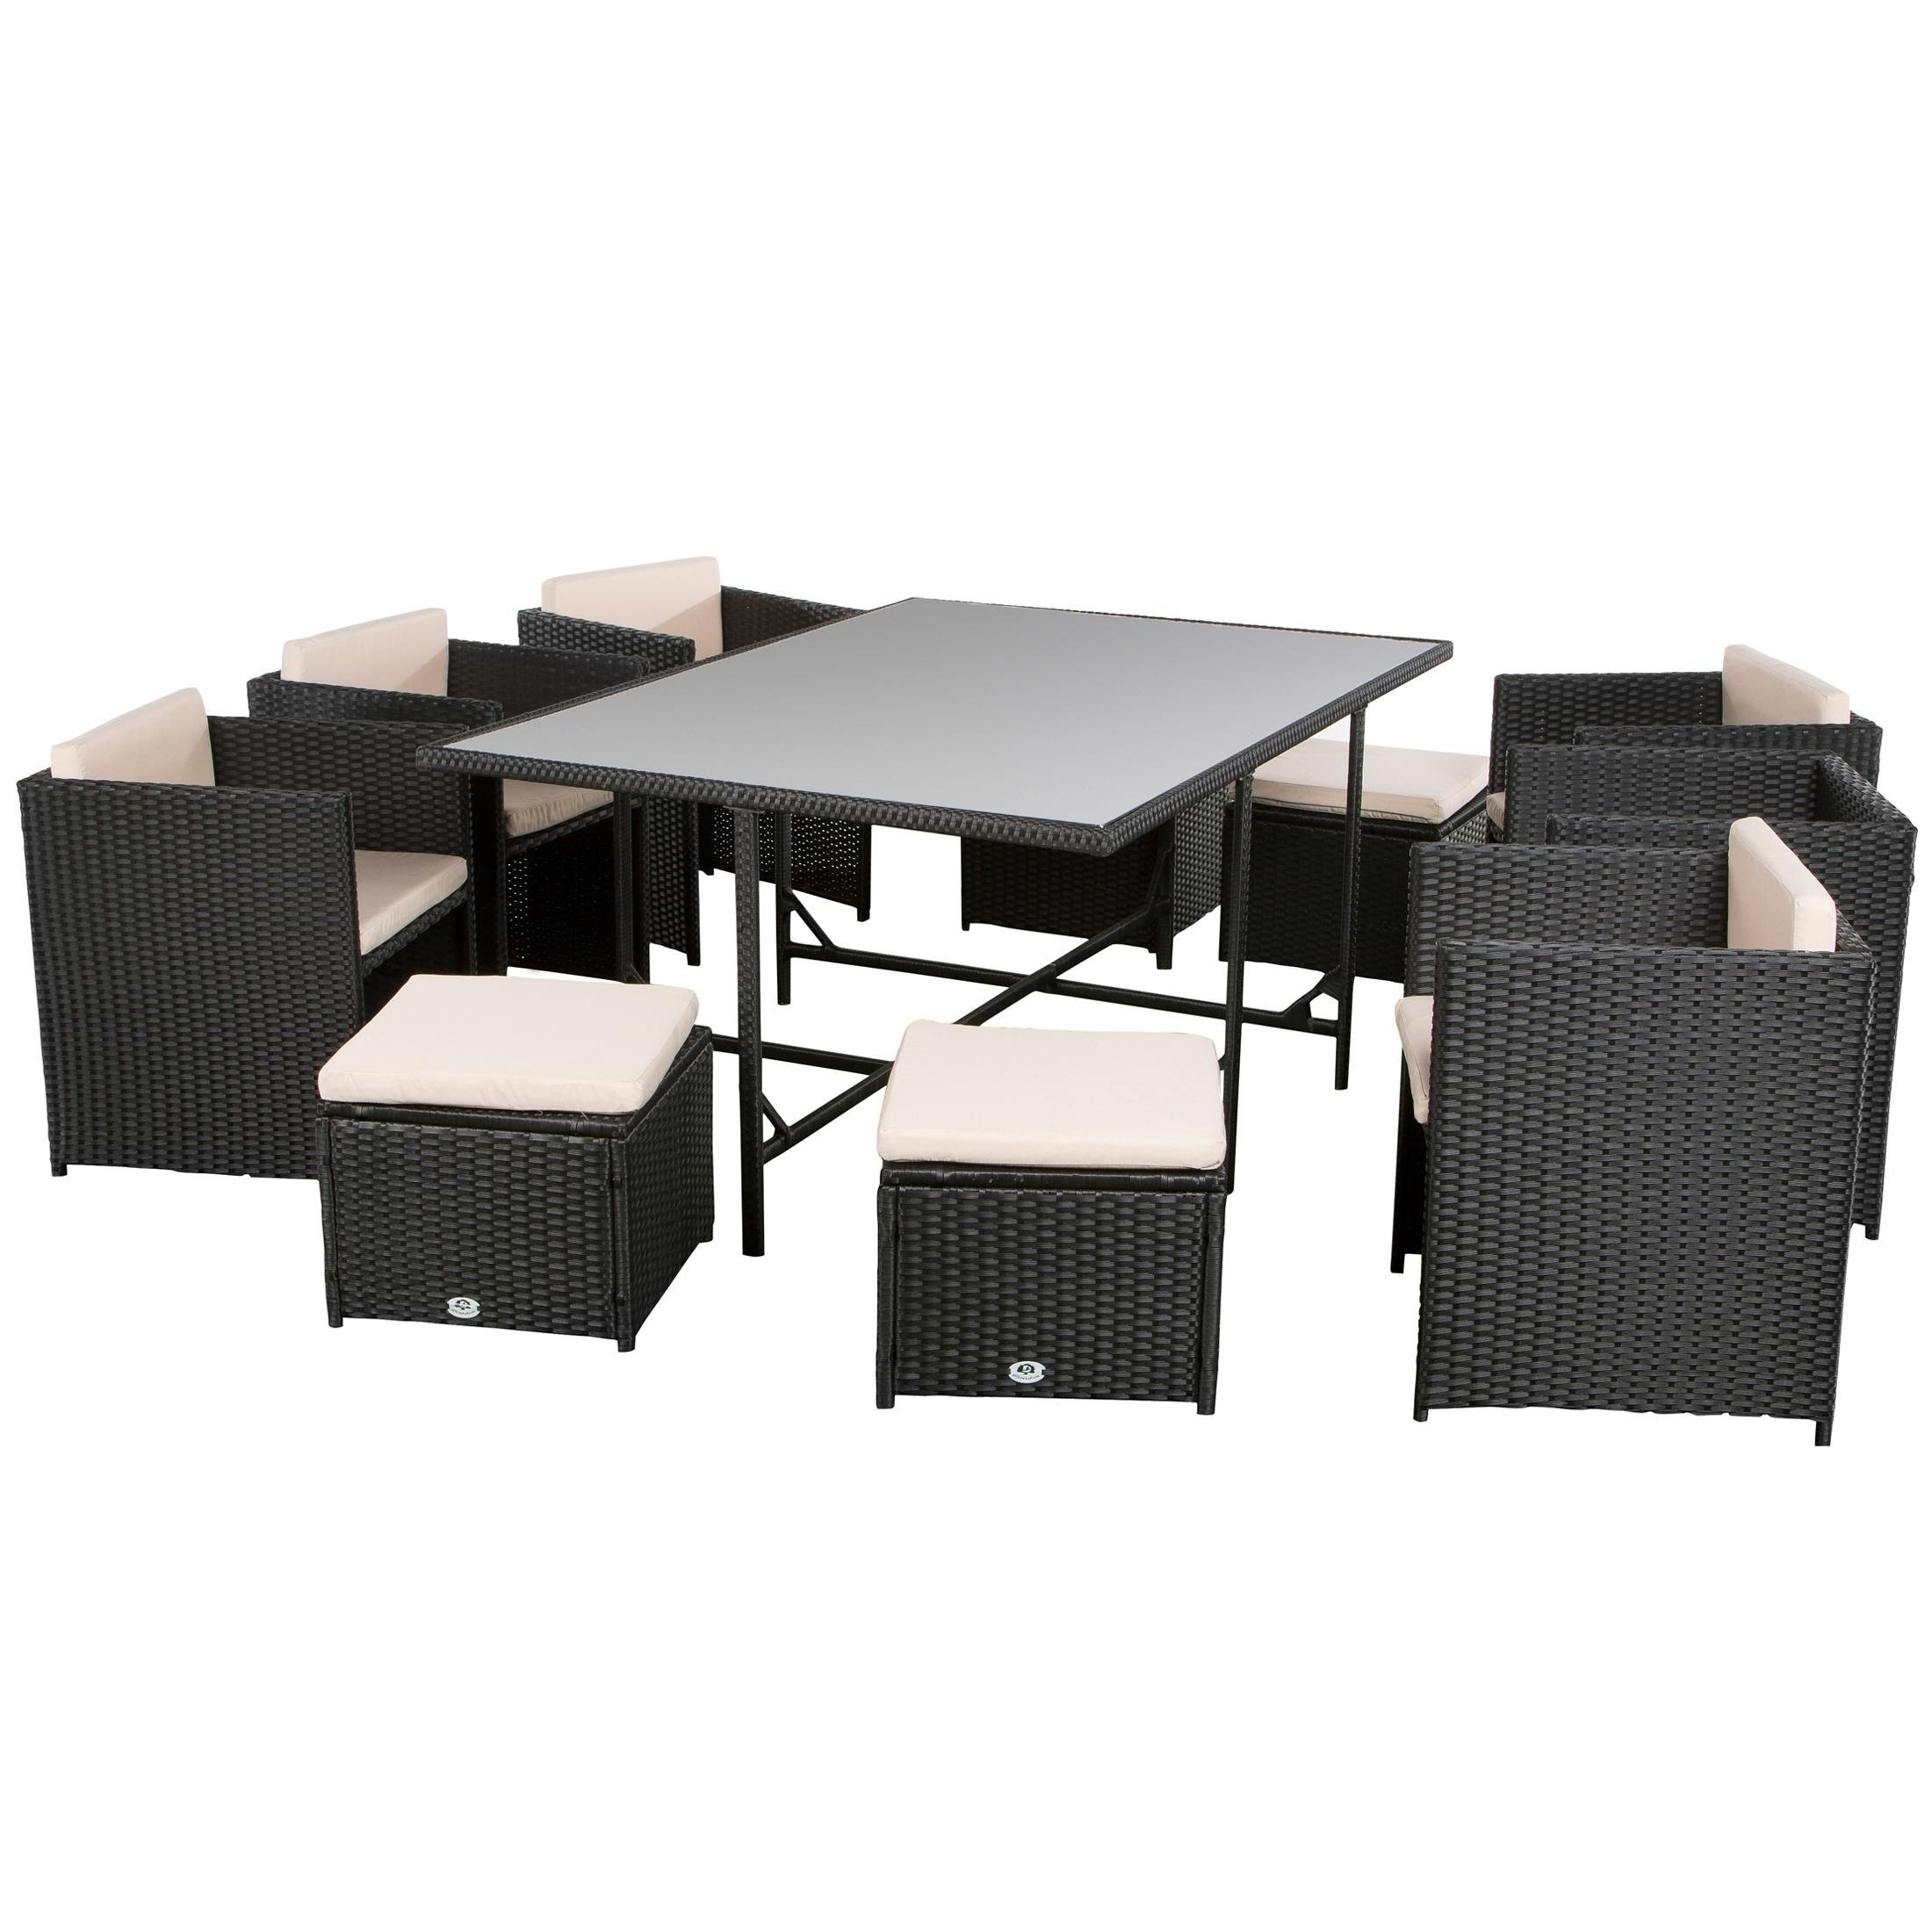 Ultranatura poly rattan lounge set palma serie for Lounge tisch